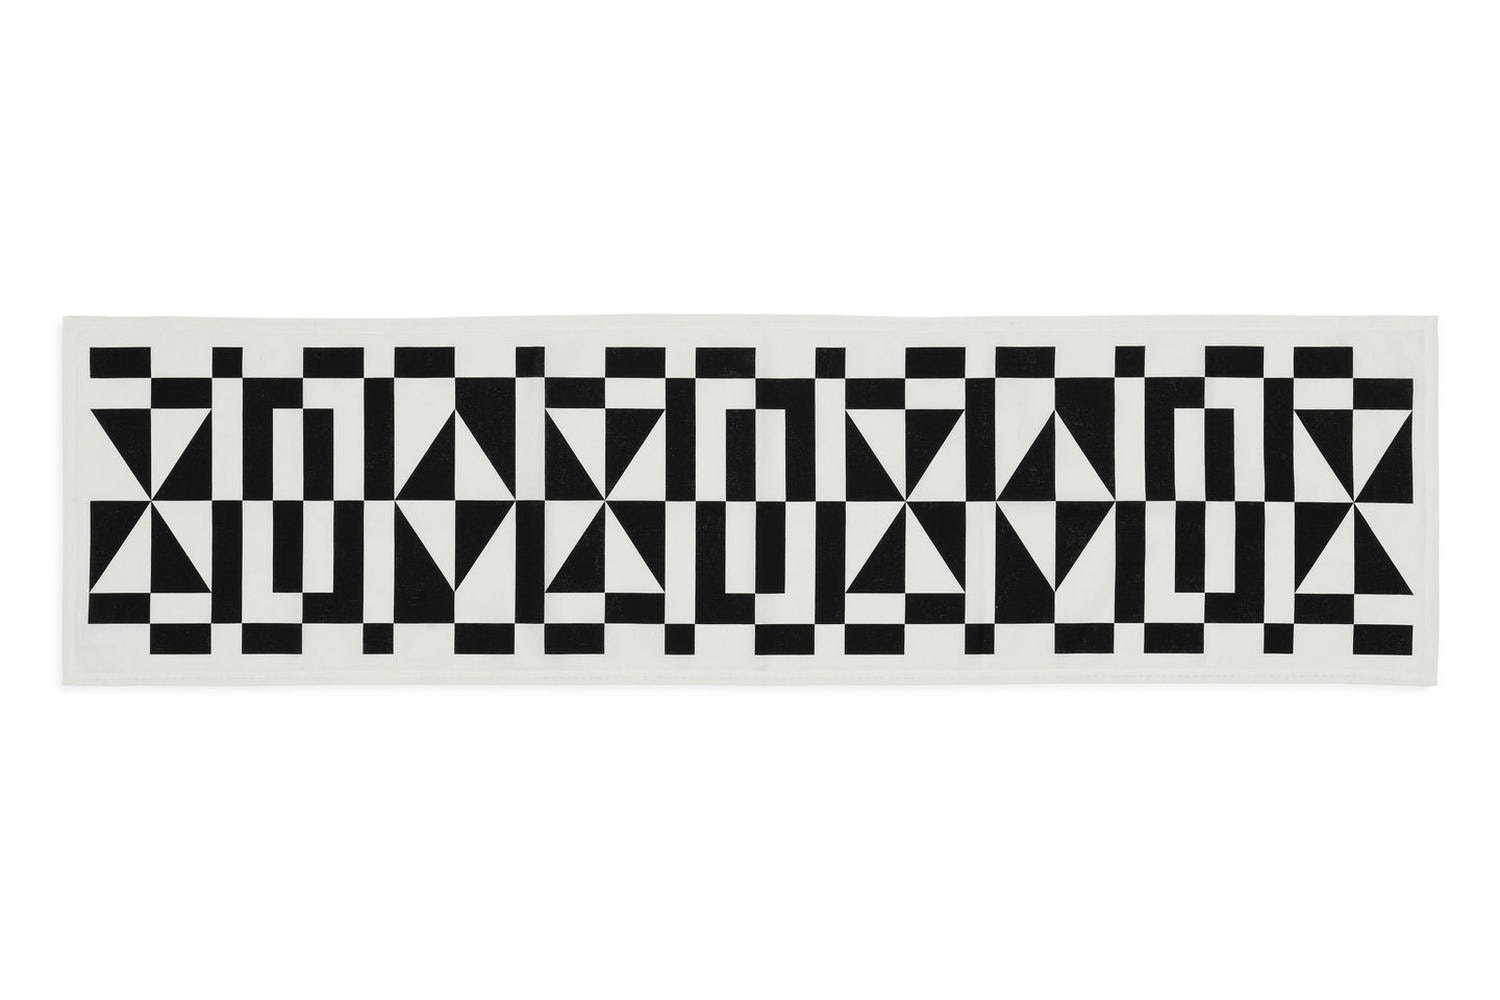 Table Runners - Geometric E by Alexander Girard for Vitra